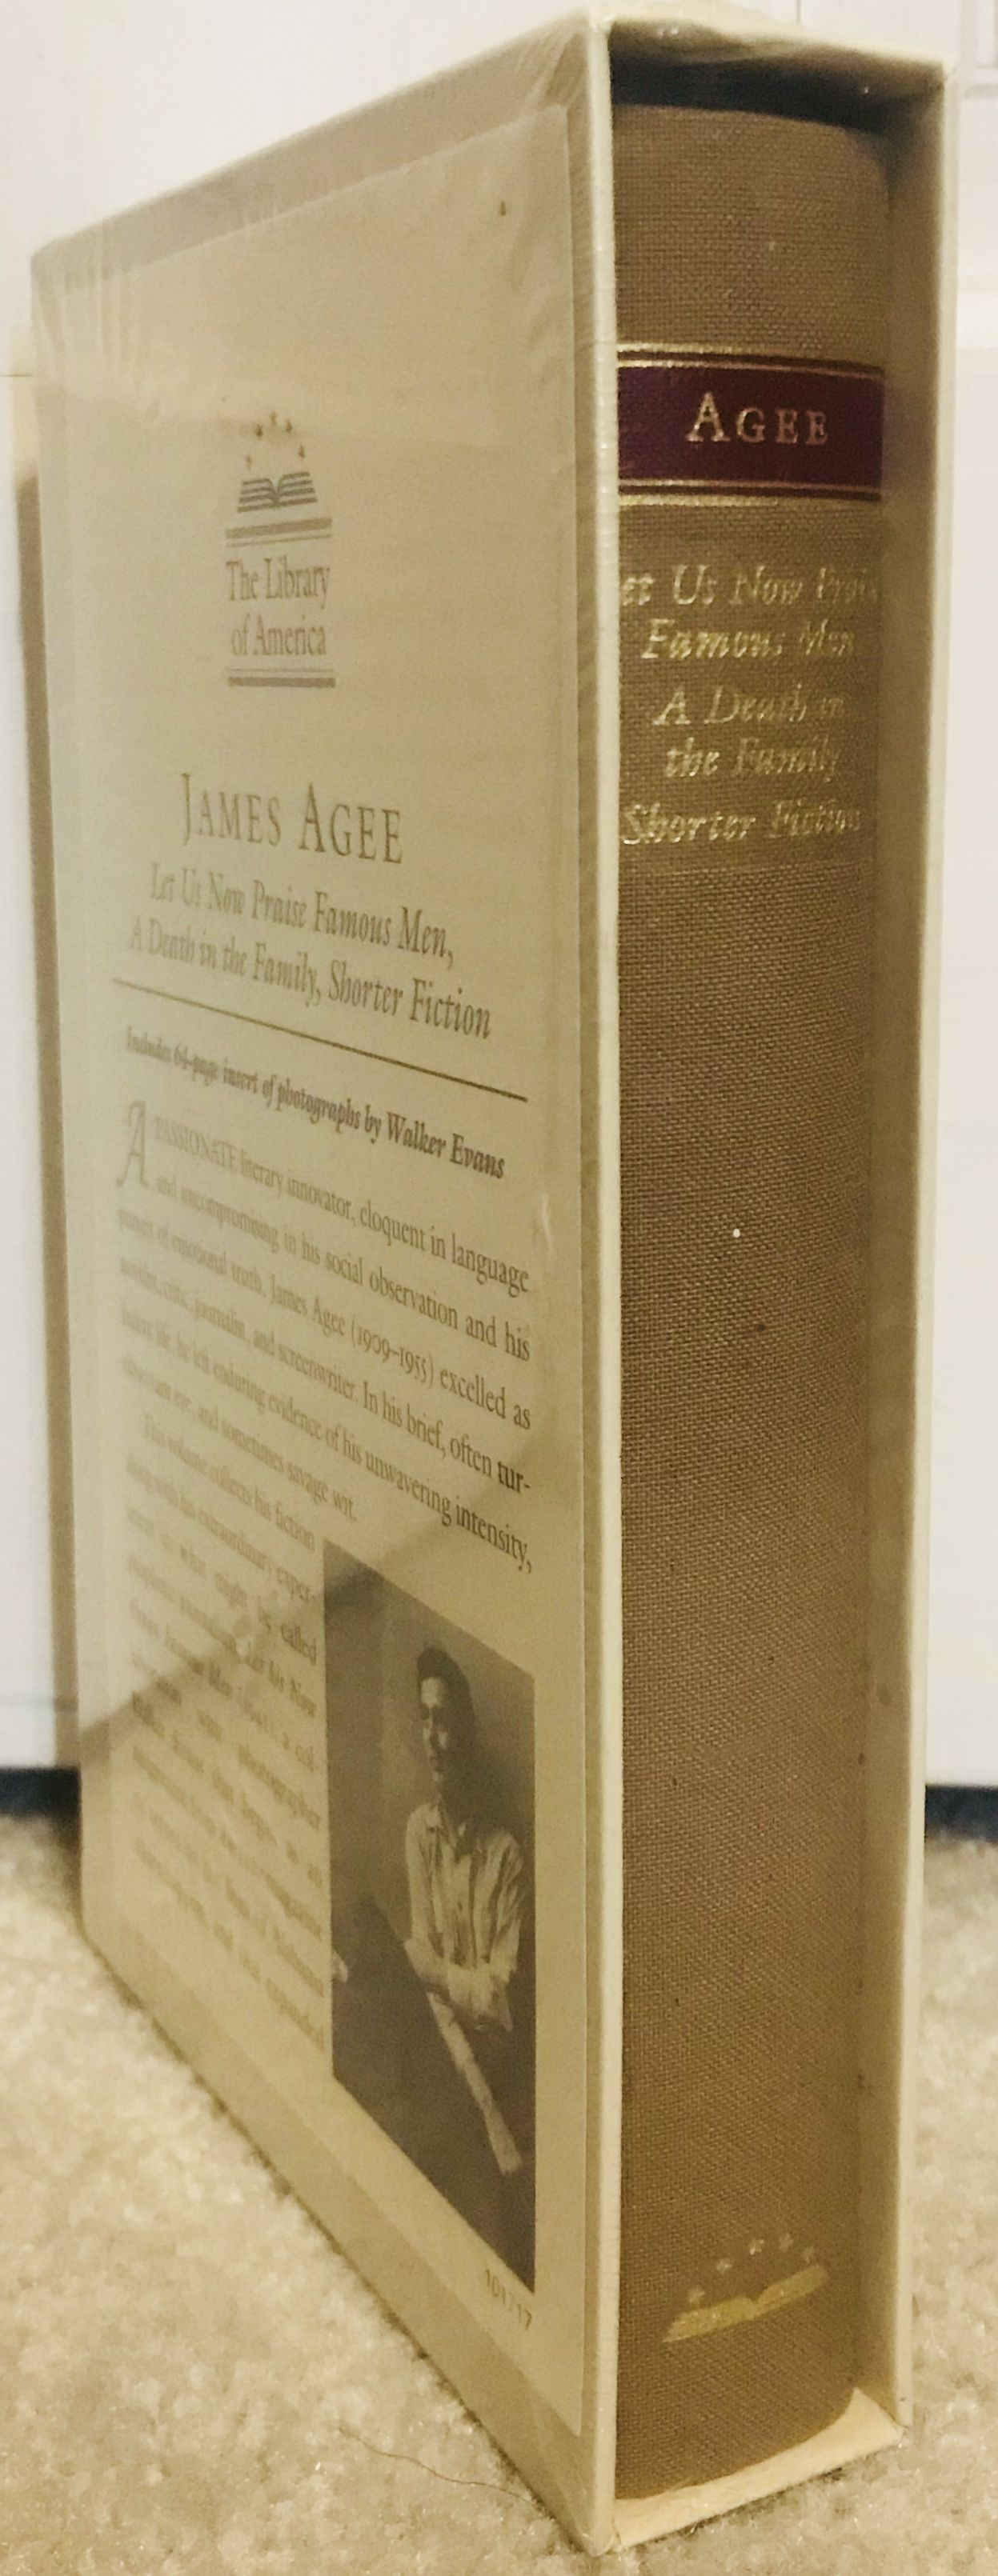 James Agee: Let Us Now Praise Famous Men / A Death in the Family / shorter fiction (LOA #159) (Library of America), Agee, James